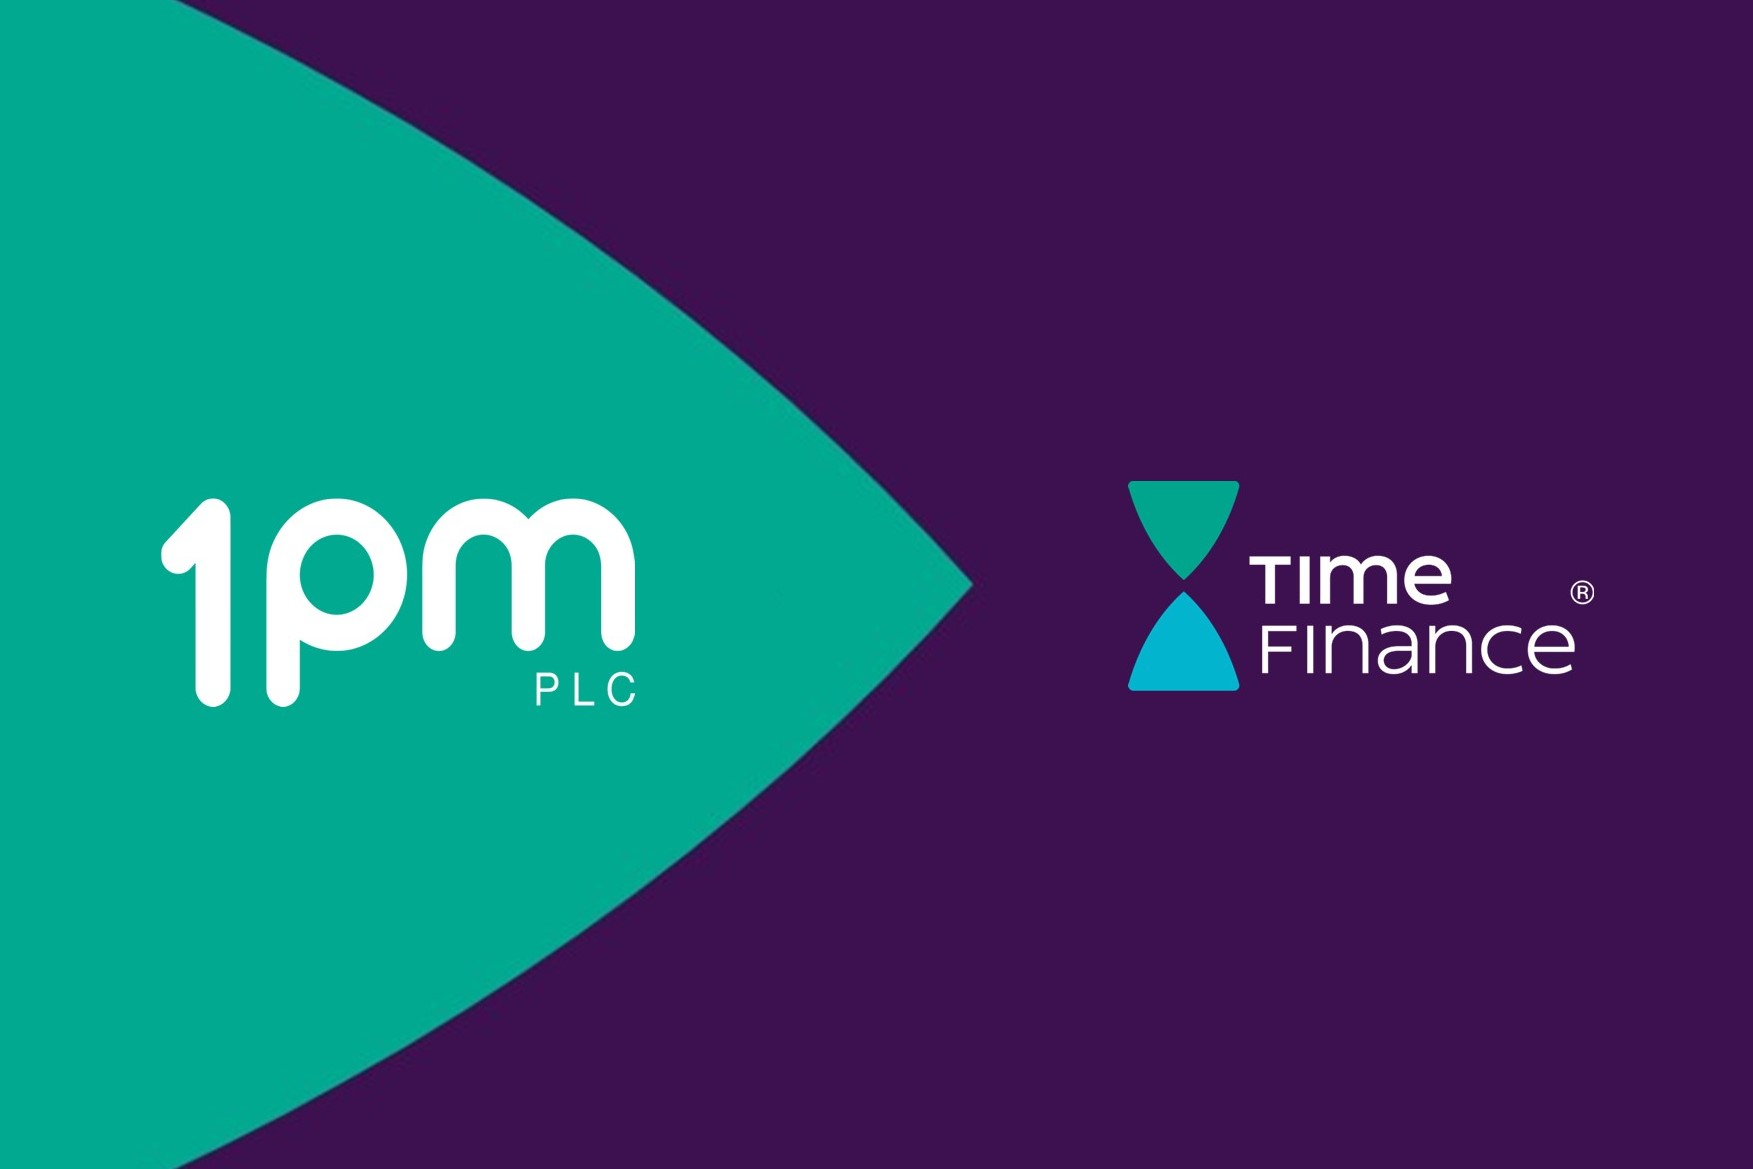 Evolution for 1pm as it rebrands to Time Finance